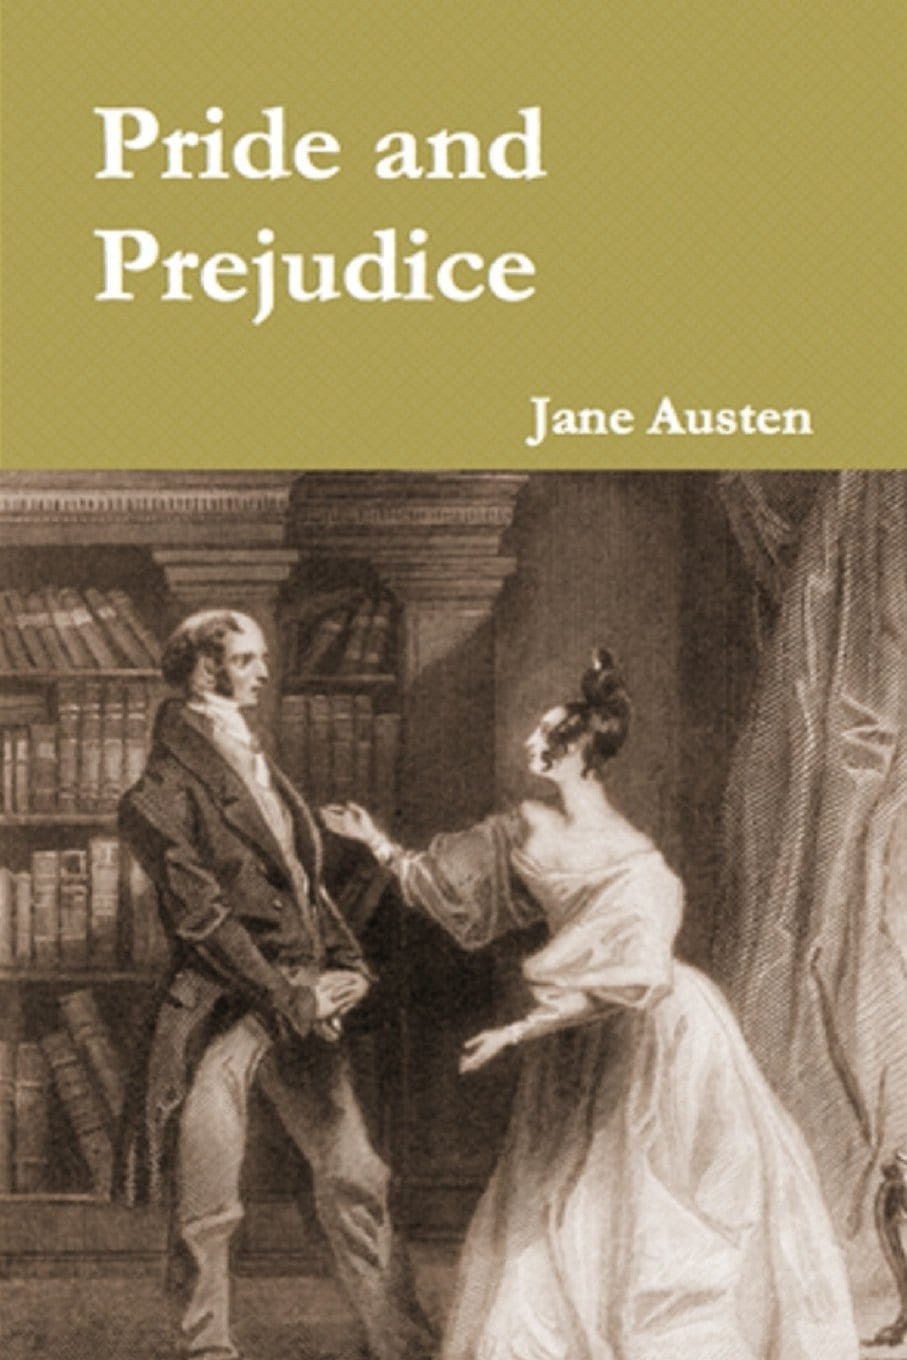 Pride and Prejudice / Foto: Courtesy of Amazon